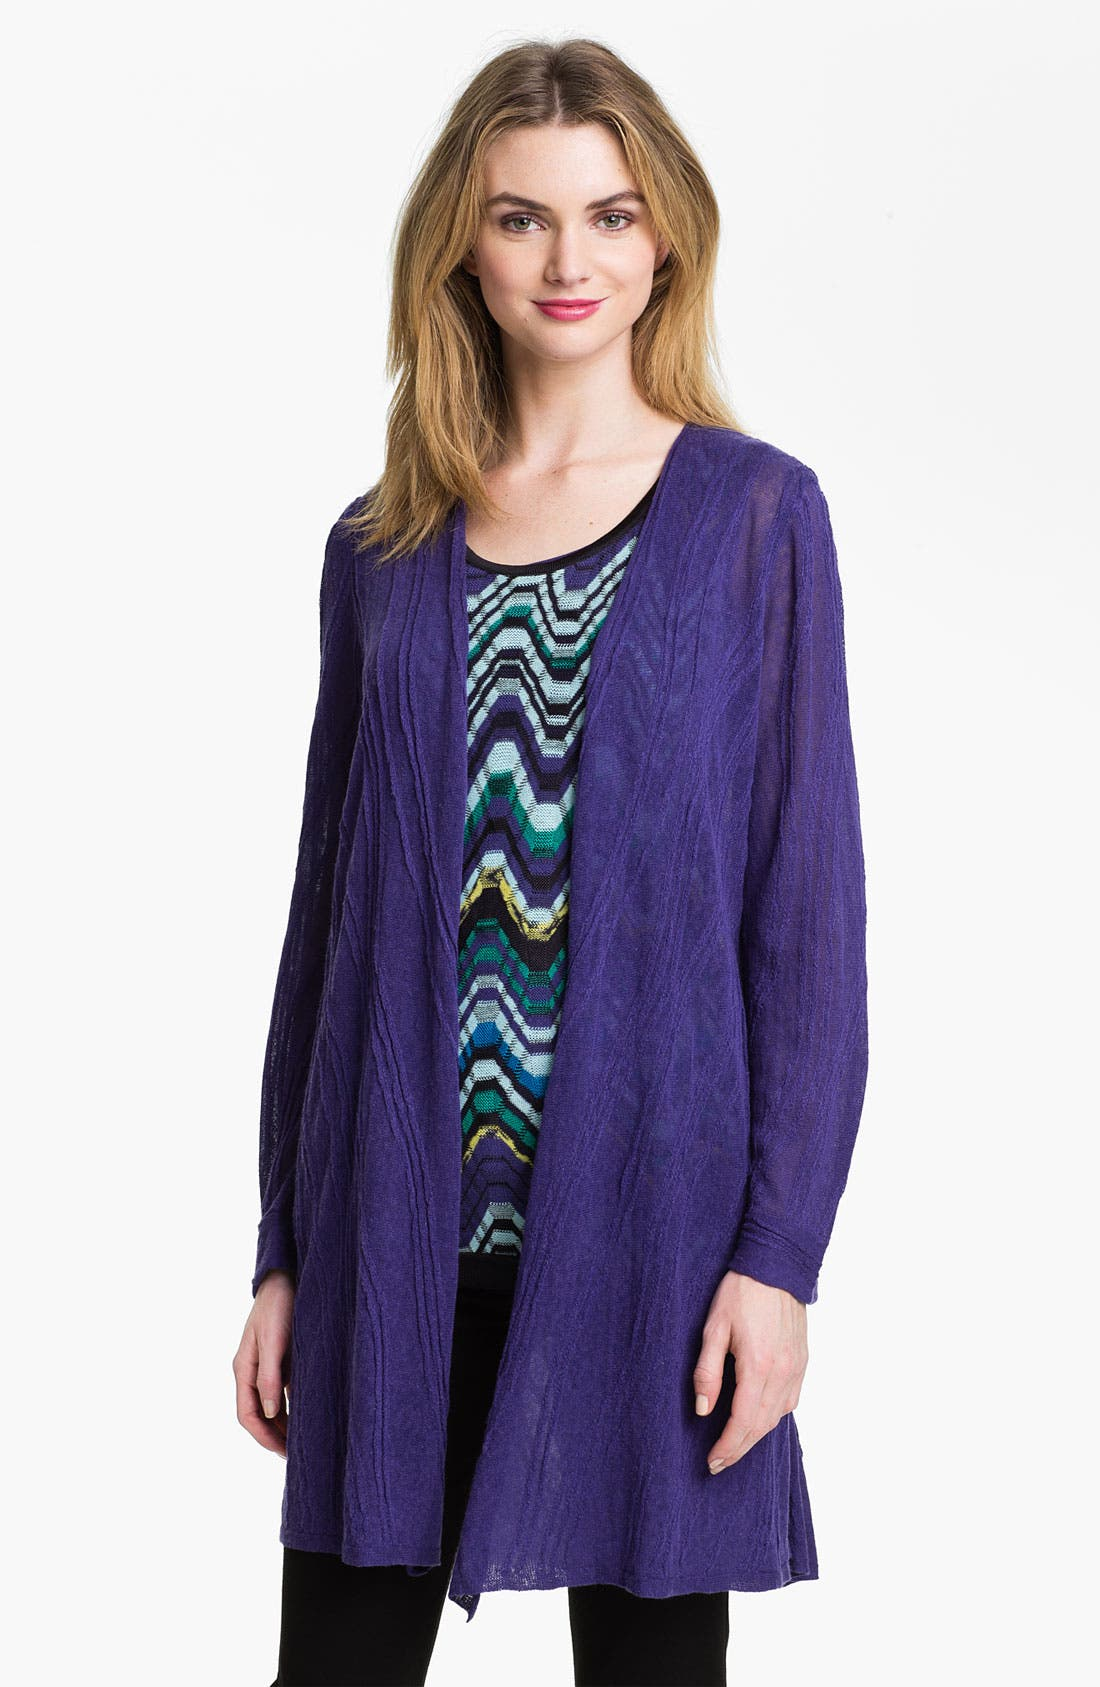 Main Image - Nic + Zoe 'Wave' Textured Long Cardigan